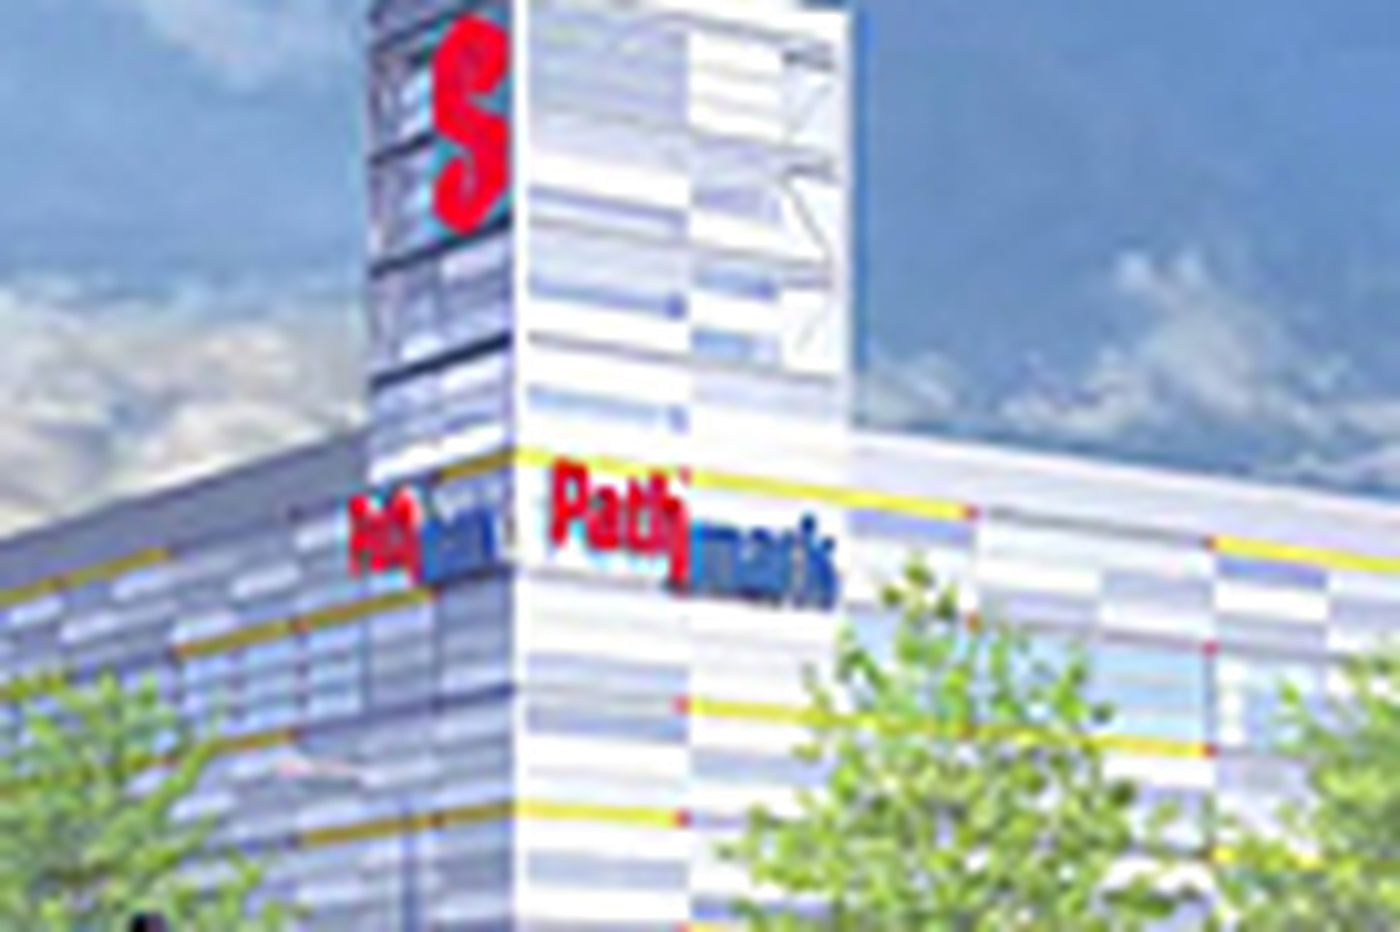 Philly developer can't force bankrupt A&P to drop lease, judge rules